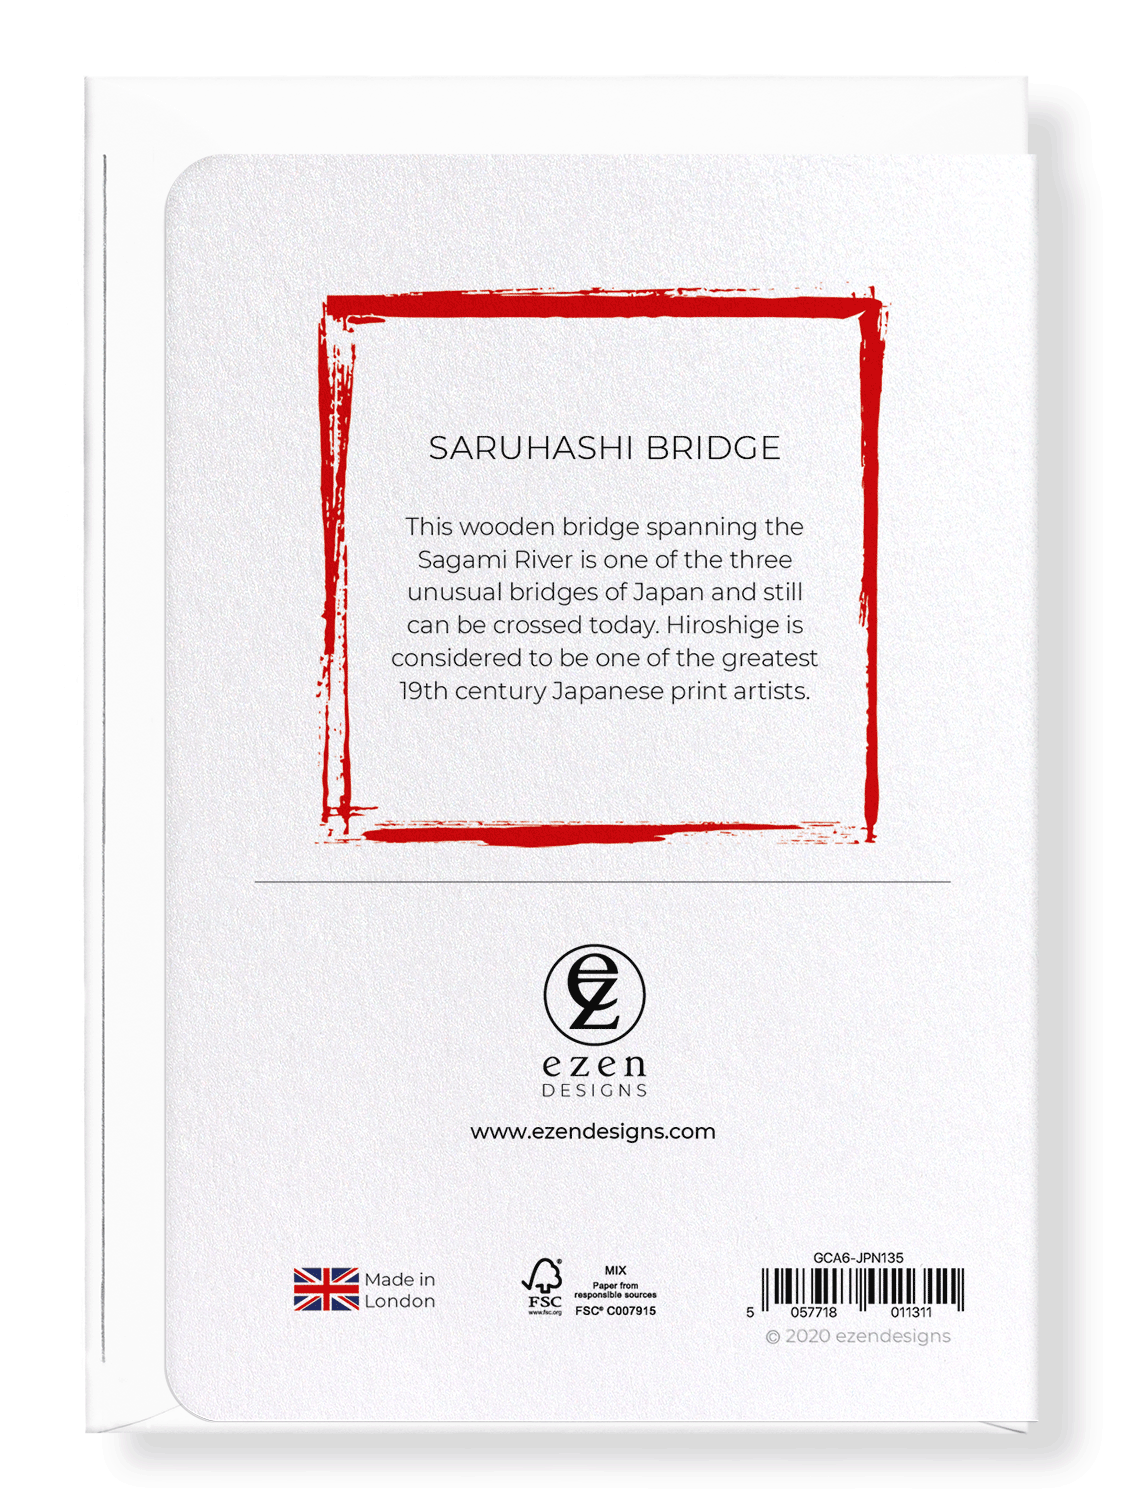 Ezen Designs - Saruhashi bridge - Greeting Card - Back